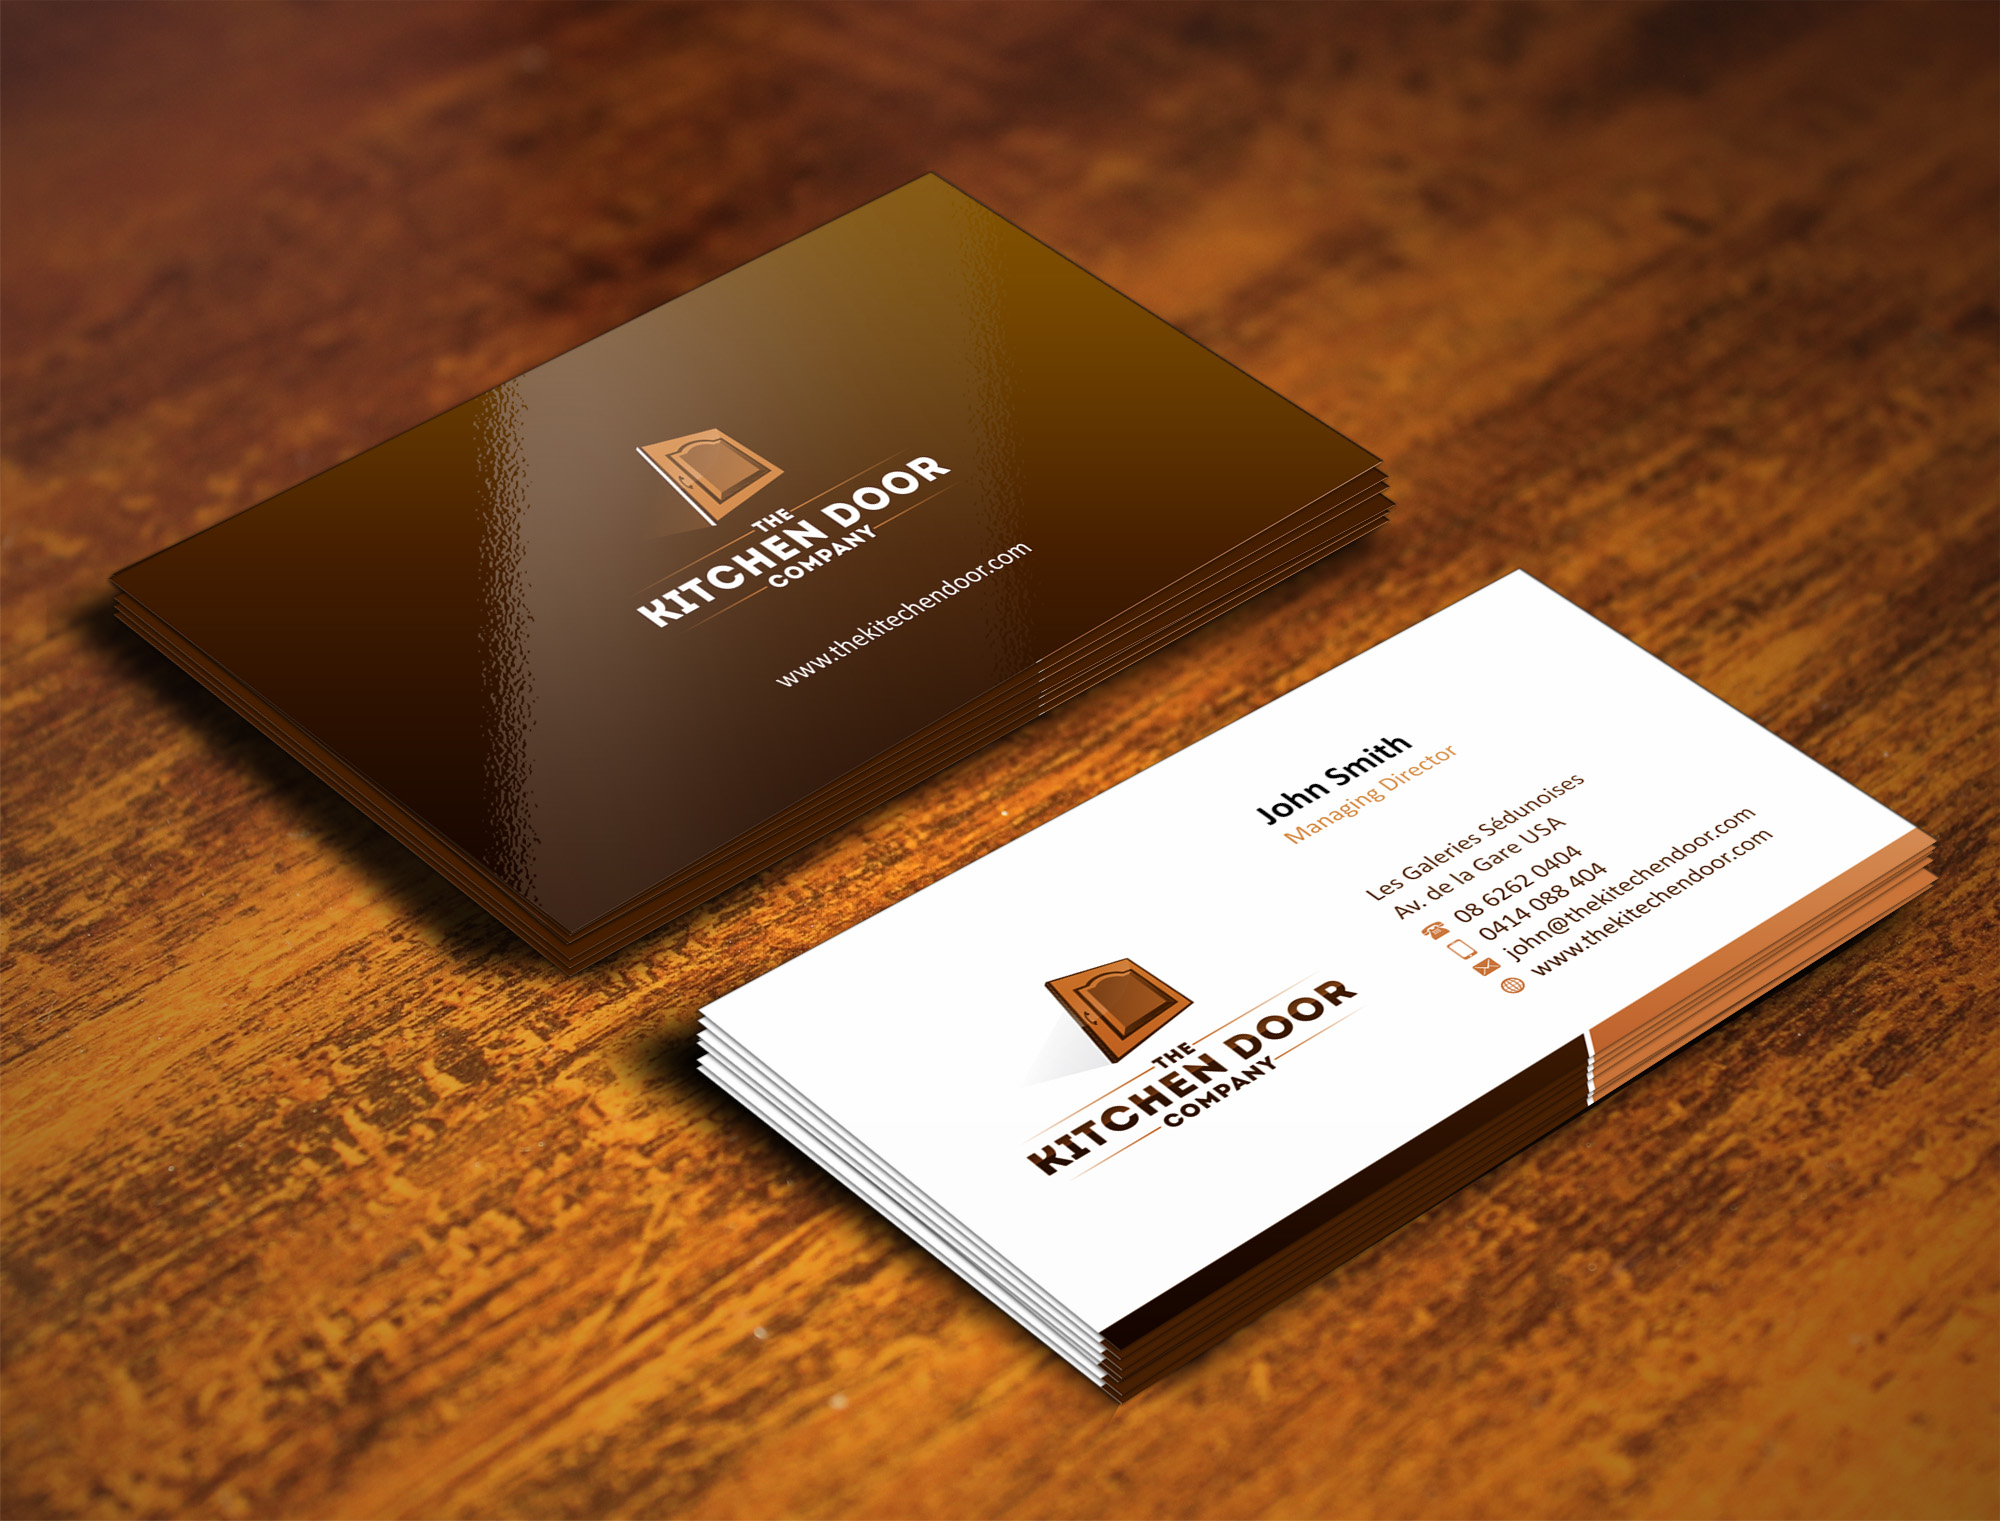 Business card design contests captivating business card design for business card design by muhammad aslam entry no 9 in the business card design colourmoves